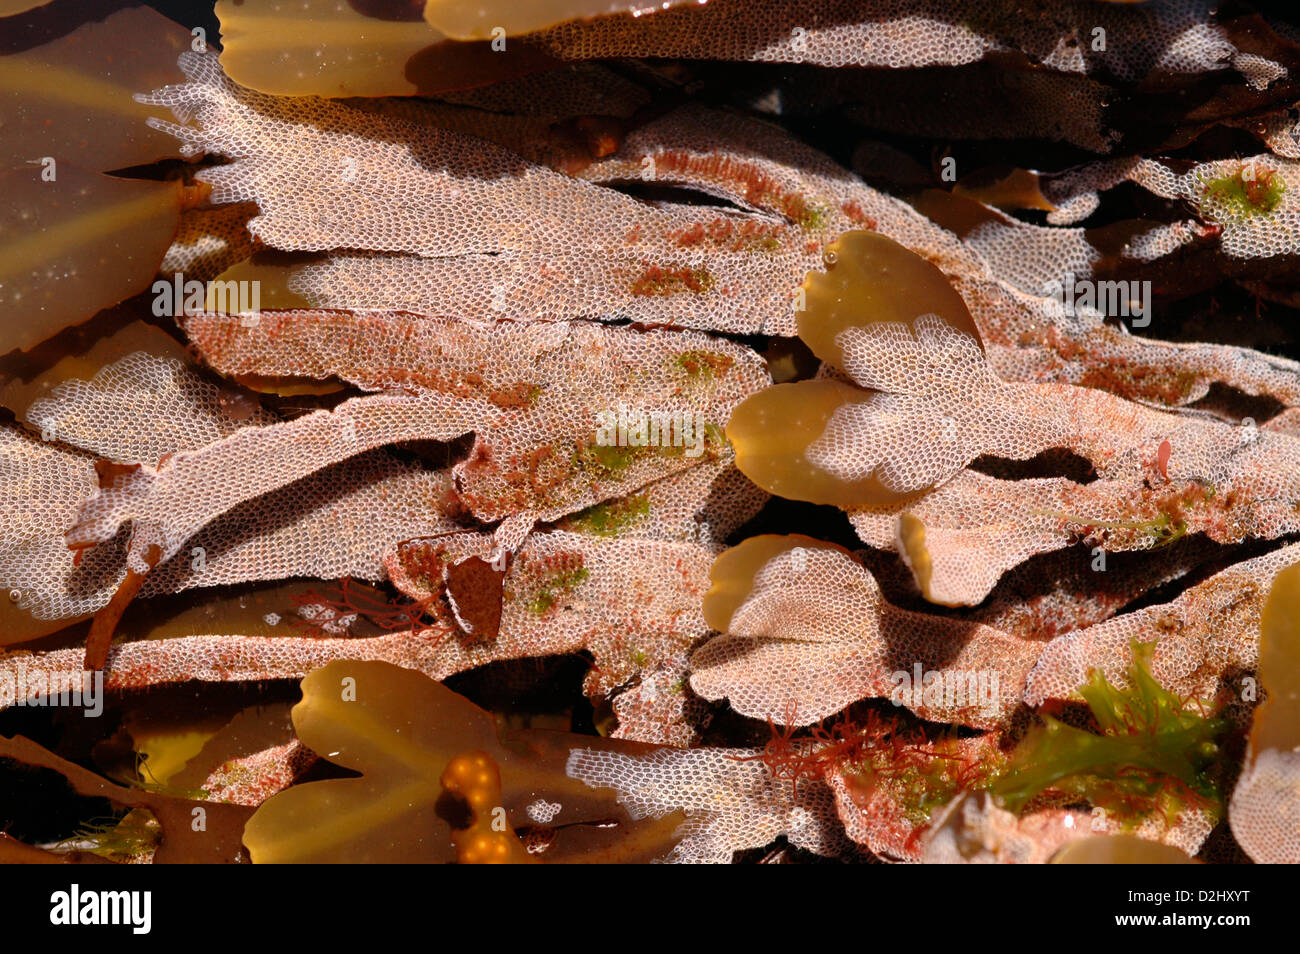 Sea mat bryozoan (Electra pilosa) on saw wrack in a rockpool, UK Stock Photo